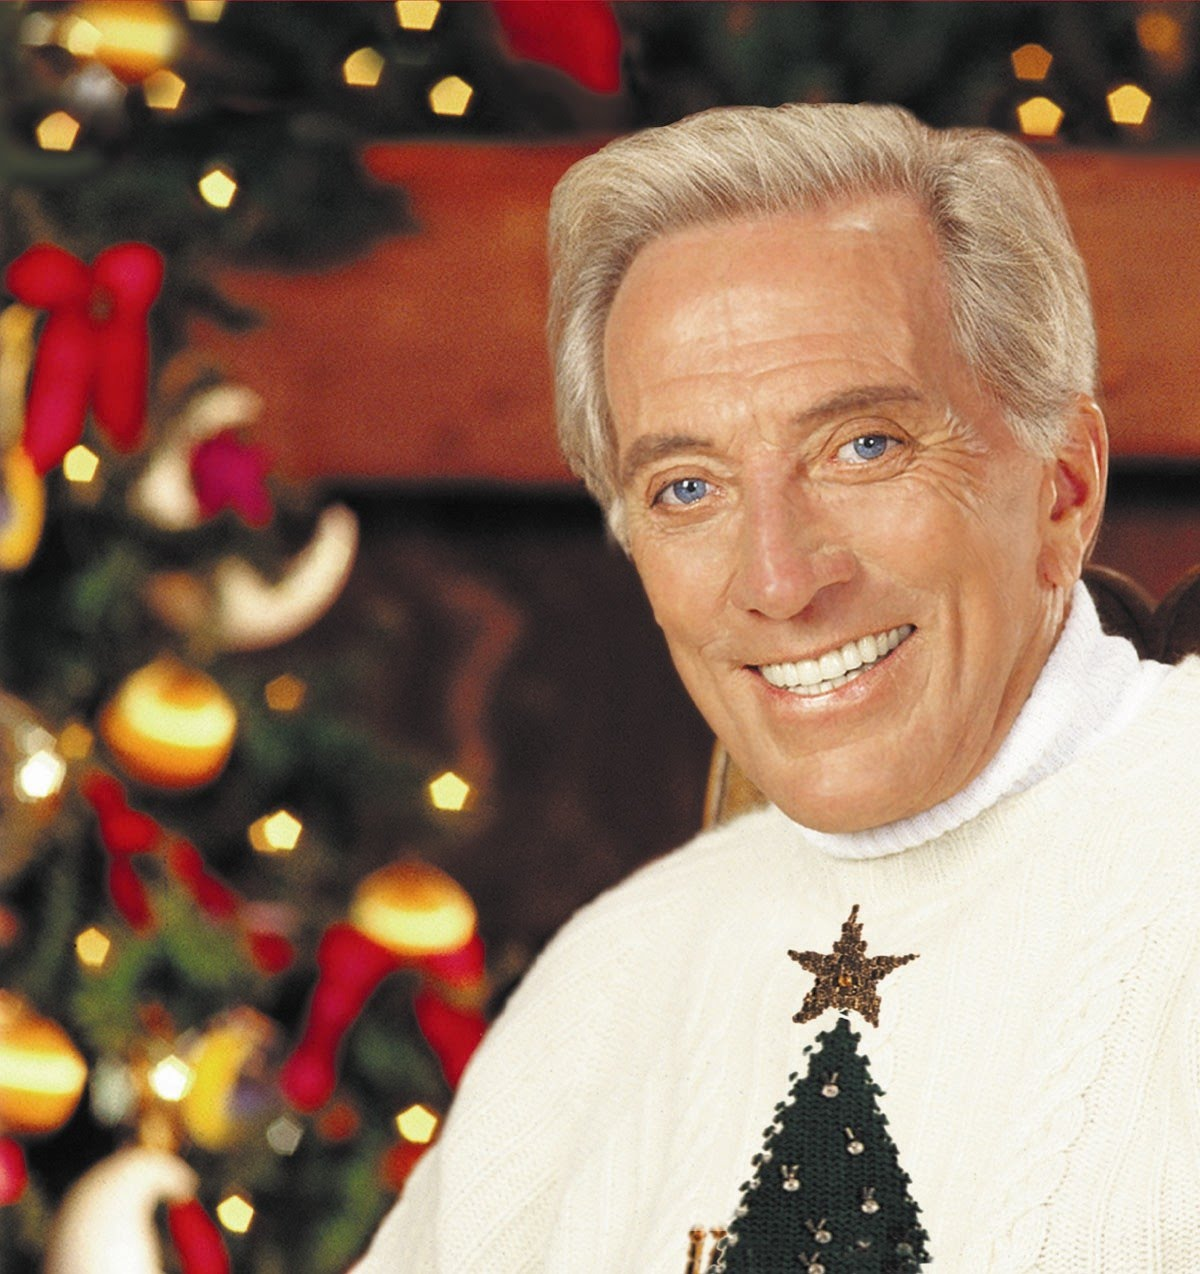 save the andy williams christmas show - Andy Williams Christmas Show